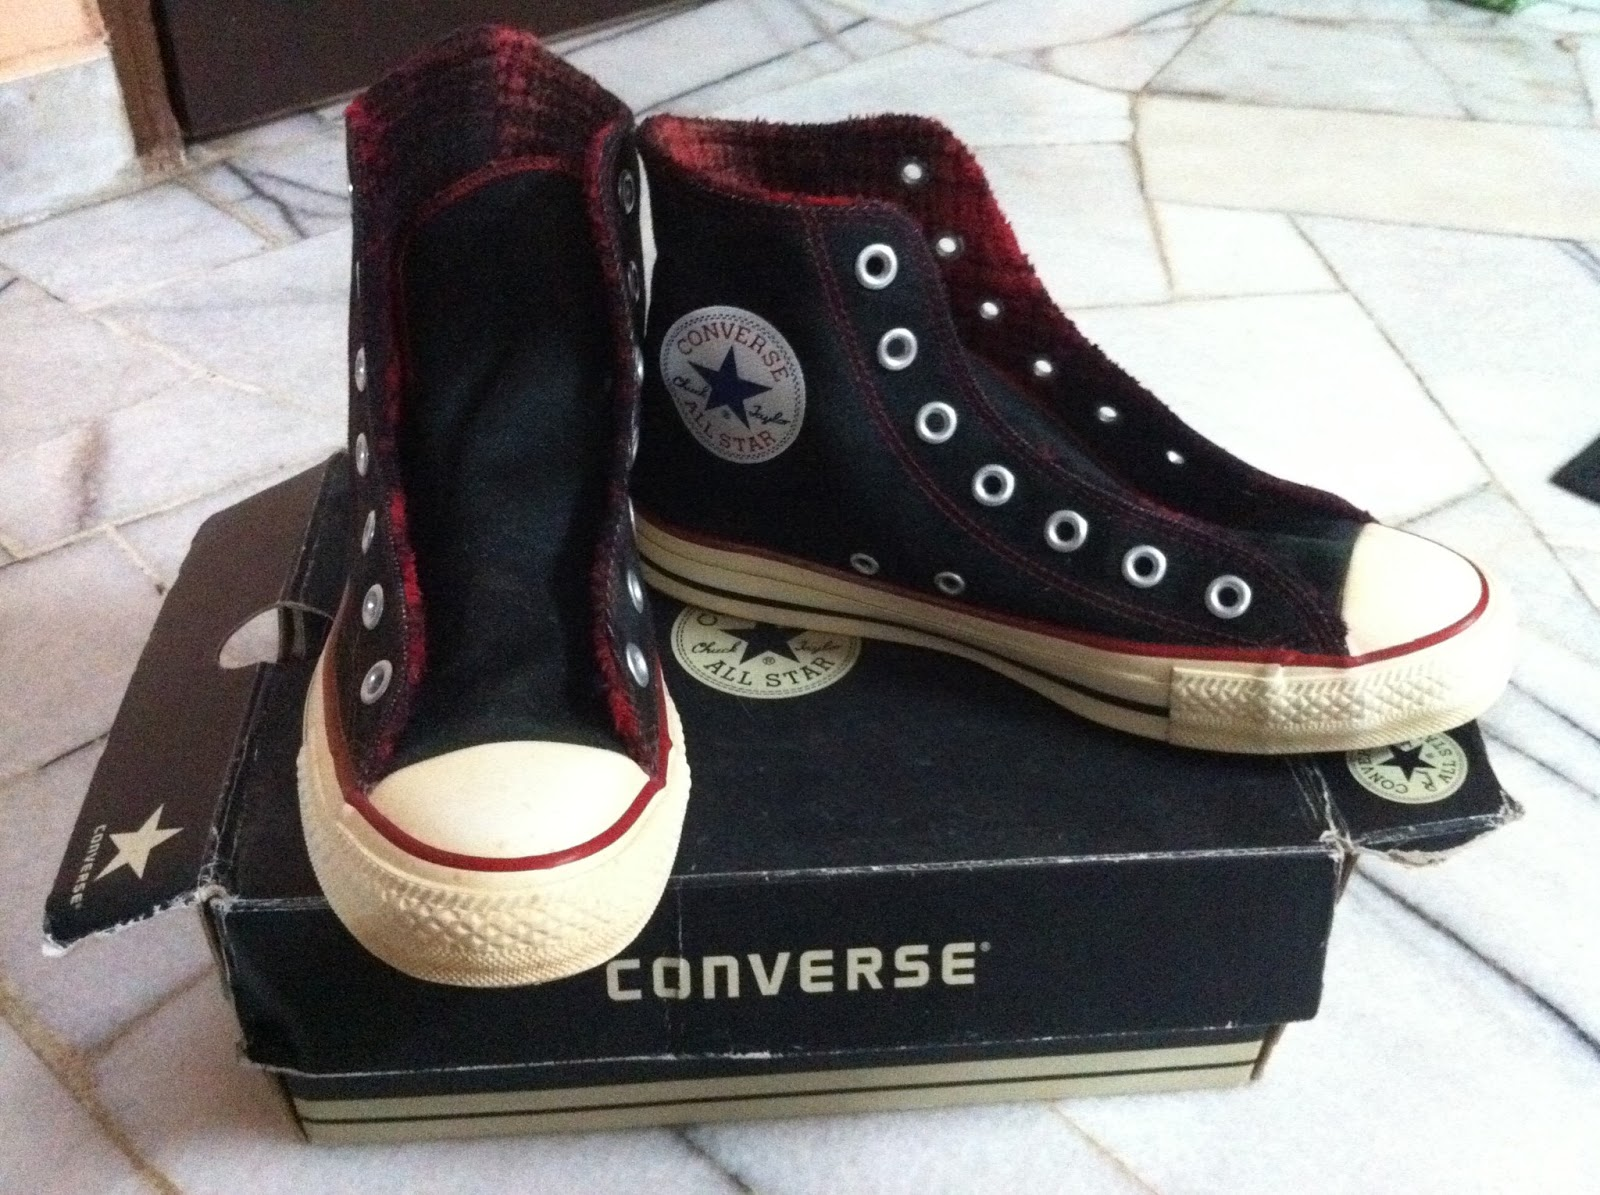 8d43b43c549f Converse All Star Chuck Taylor Hi Black Red Stitch Foldable Unisex Trainers  Shoes